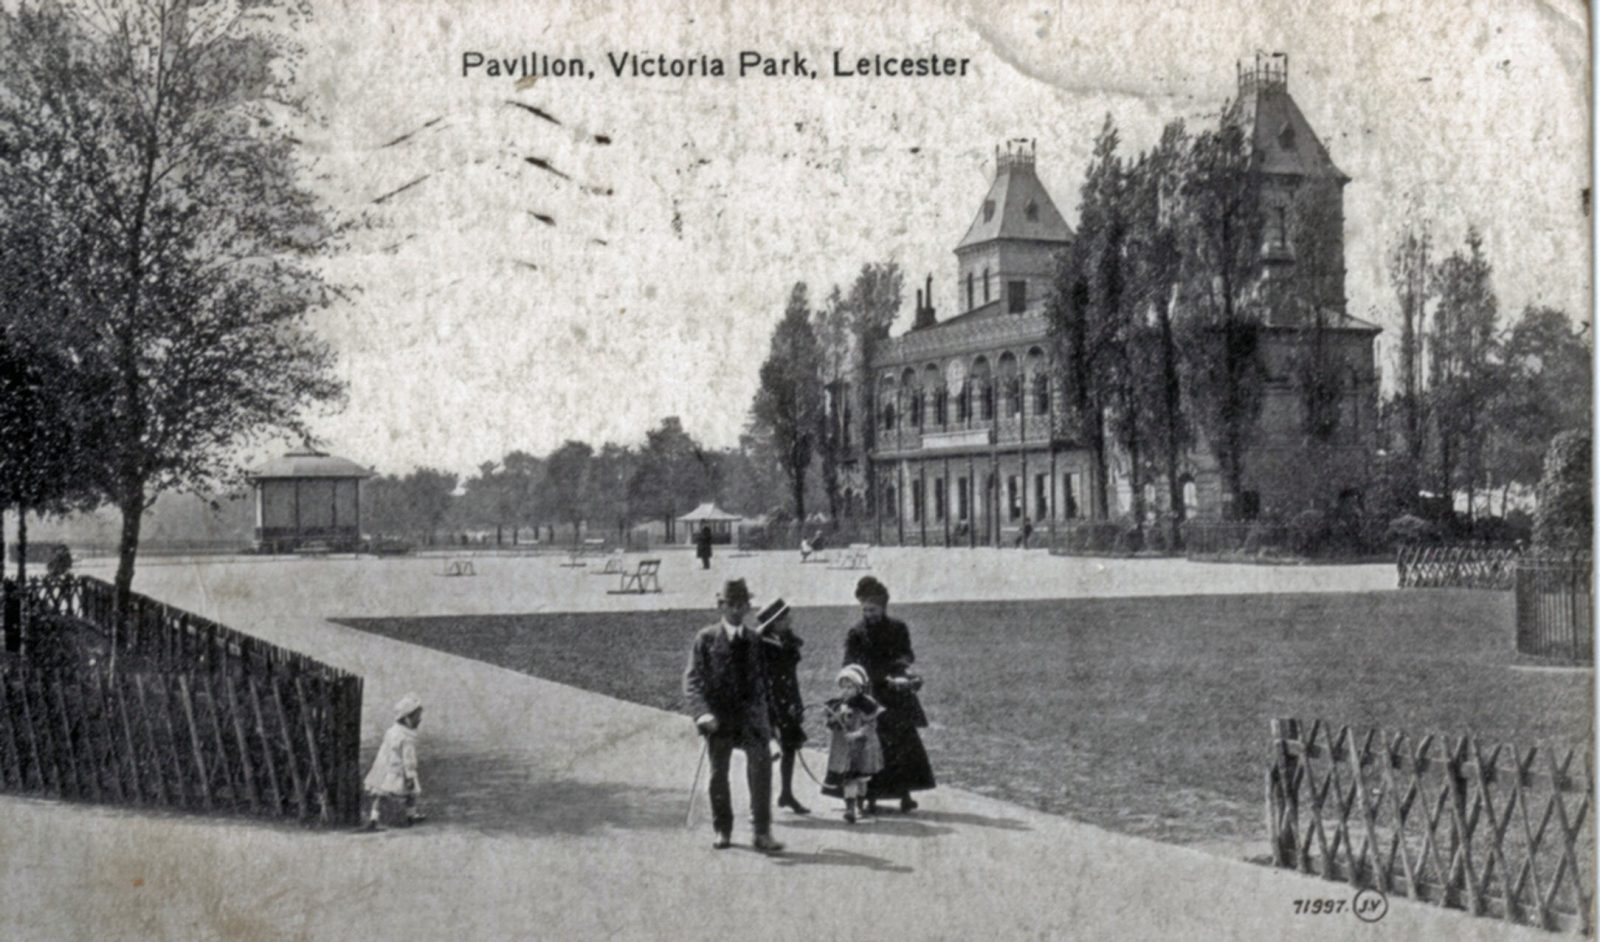 Victoria Park, Leicester. 1901-1920: The Pavilion with family group in foreground. (File:1240)